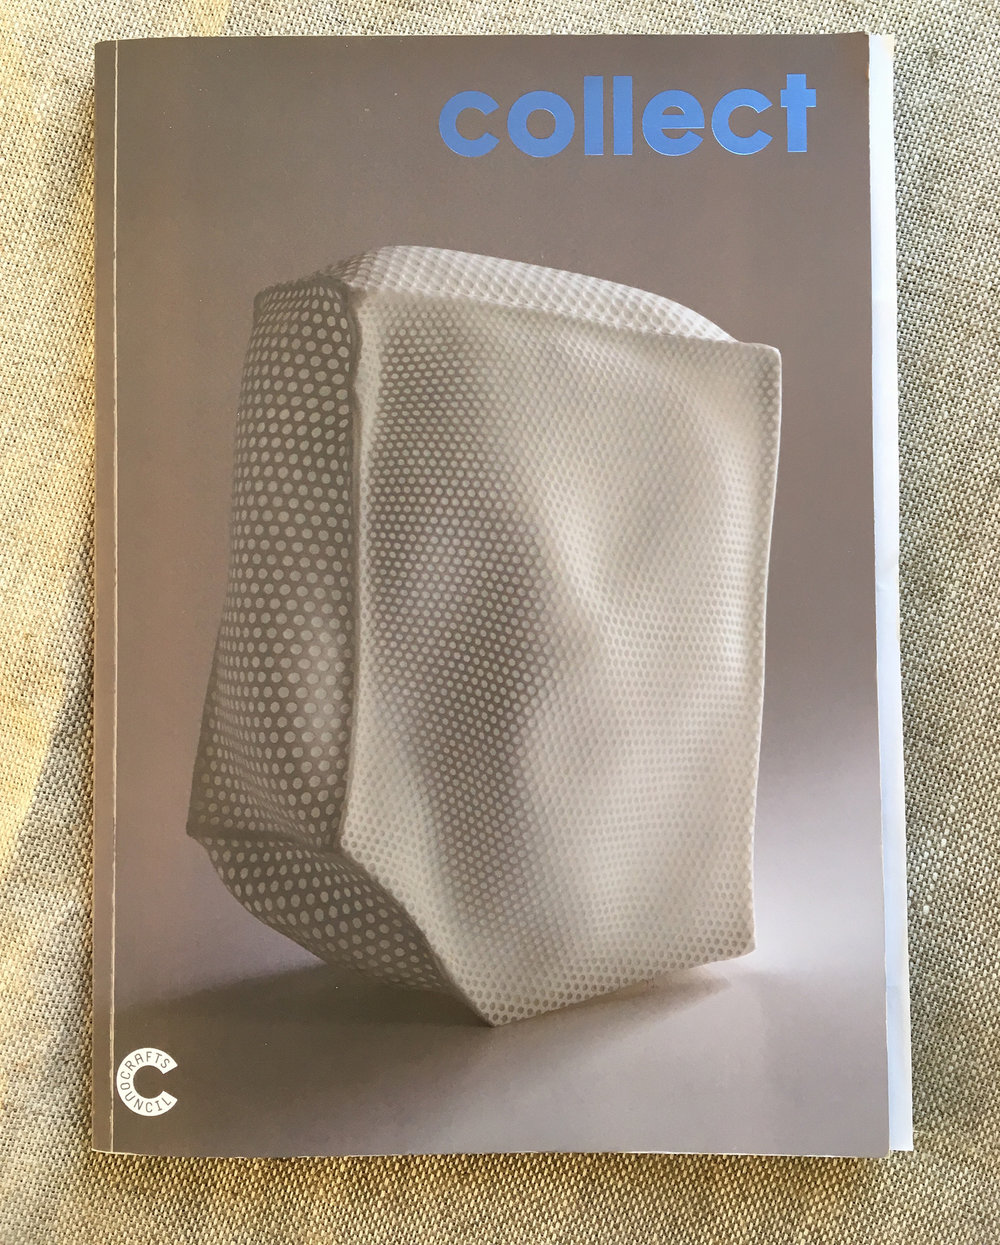 >> COLLECT Catalogue 2015